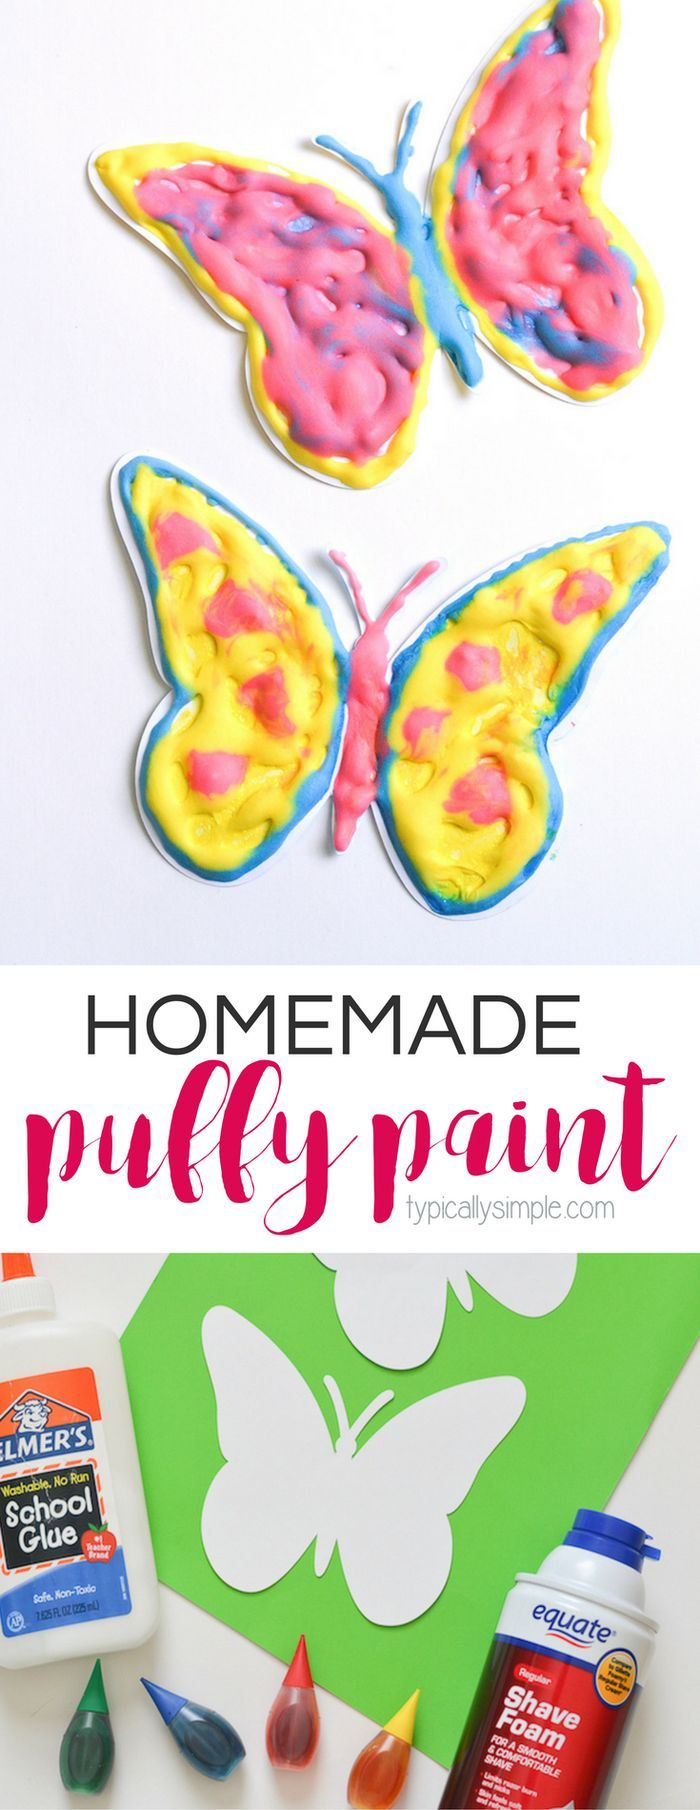 This homemade puffy paint recipe is super easy to make, plus you most likely have all of the supplies already at home! The kids will love this fun sensory activity using shaving cream and glue!